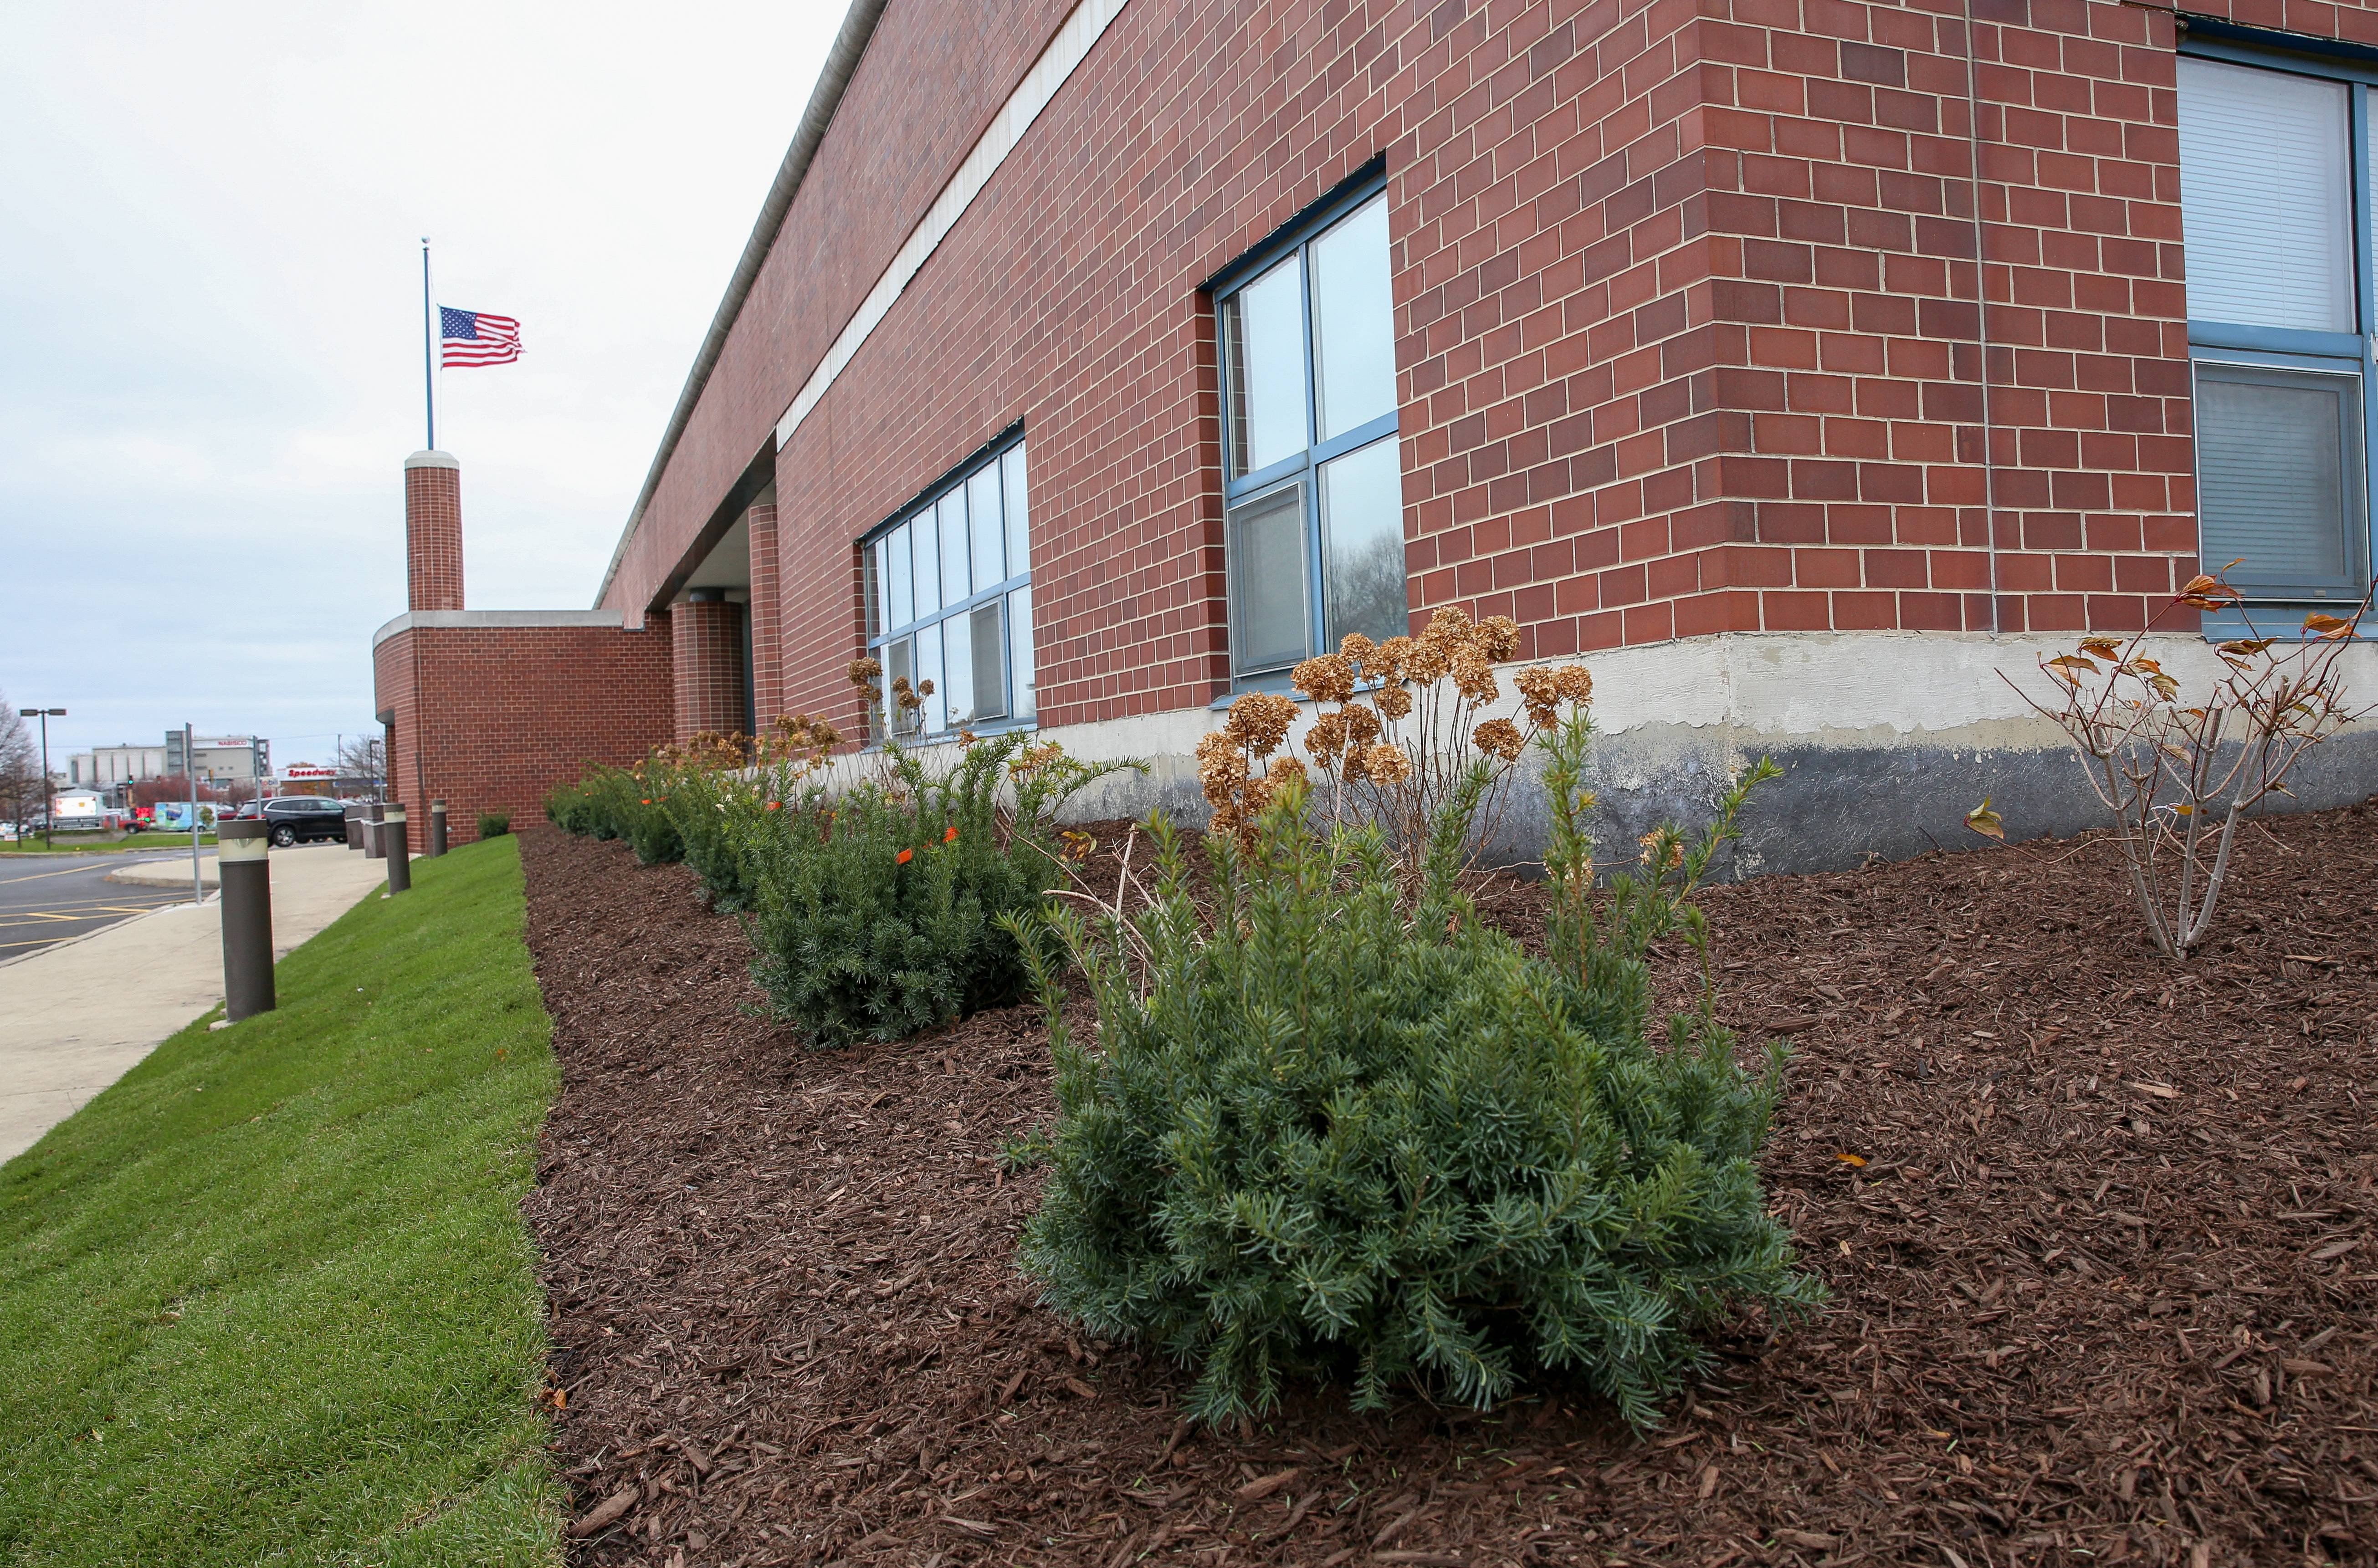 Gardeners question compromise about Naperville post office prairie